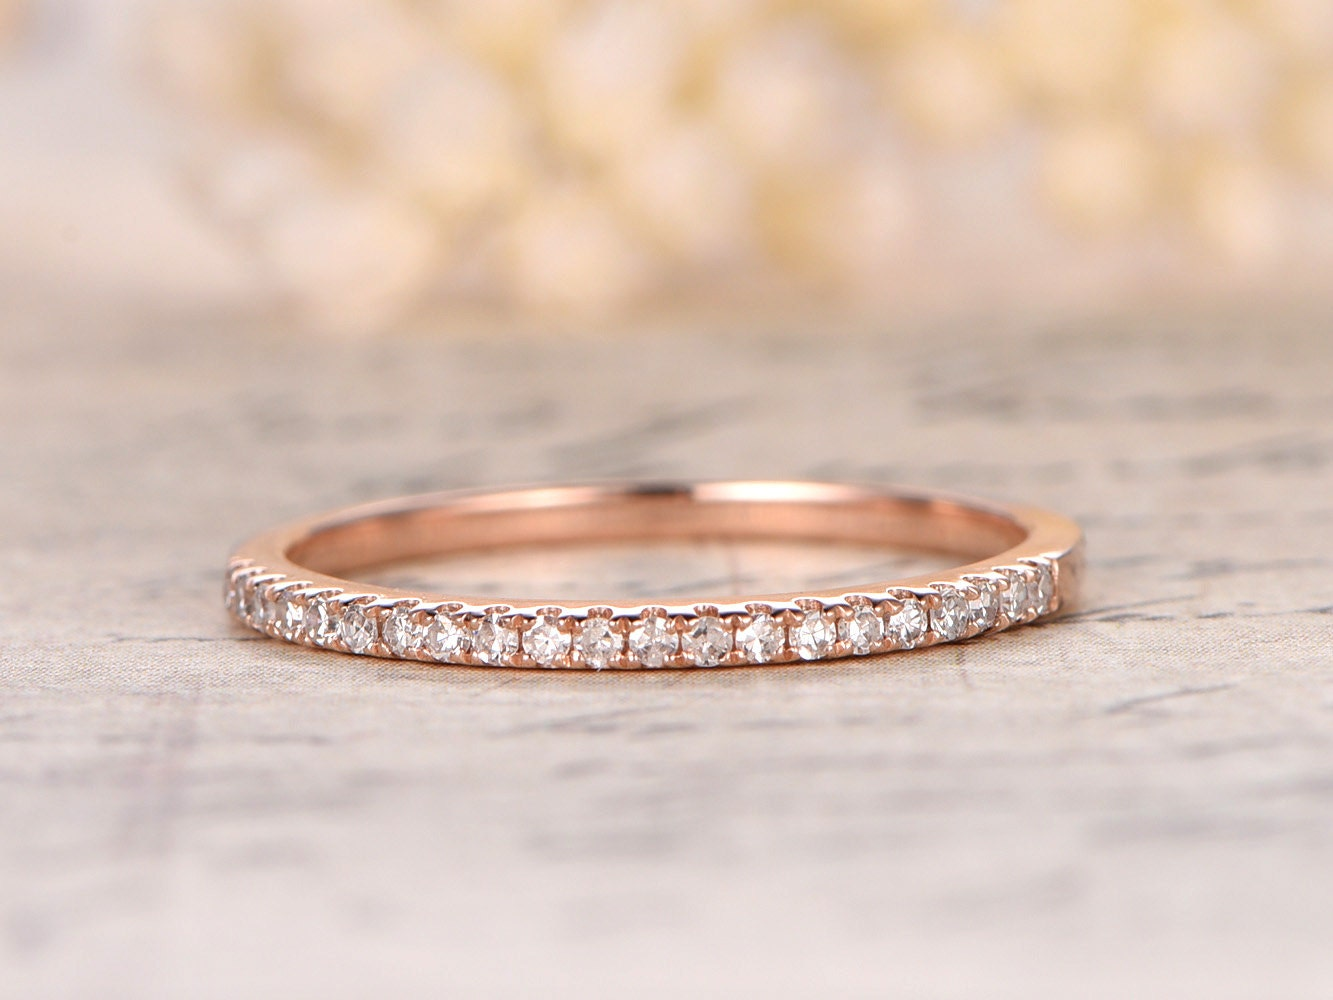 gold band rose honeycomb bands product eternity and diamond preorder nsalivenrosegolddiaeternityband liven